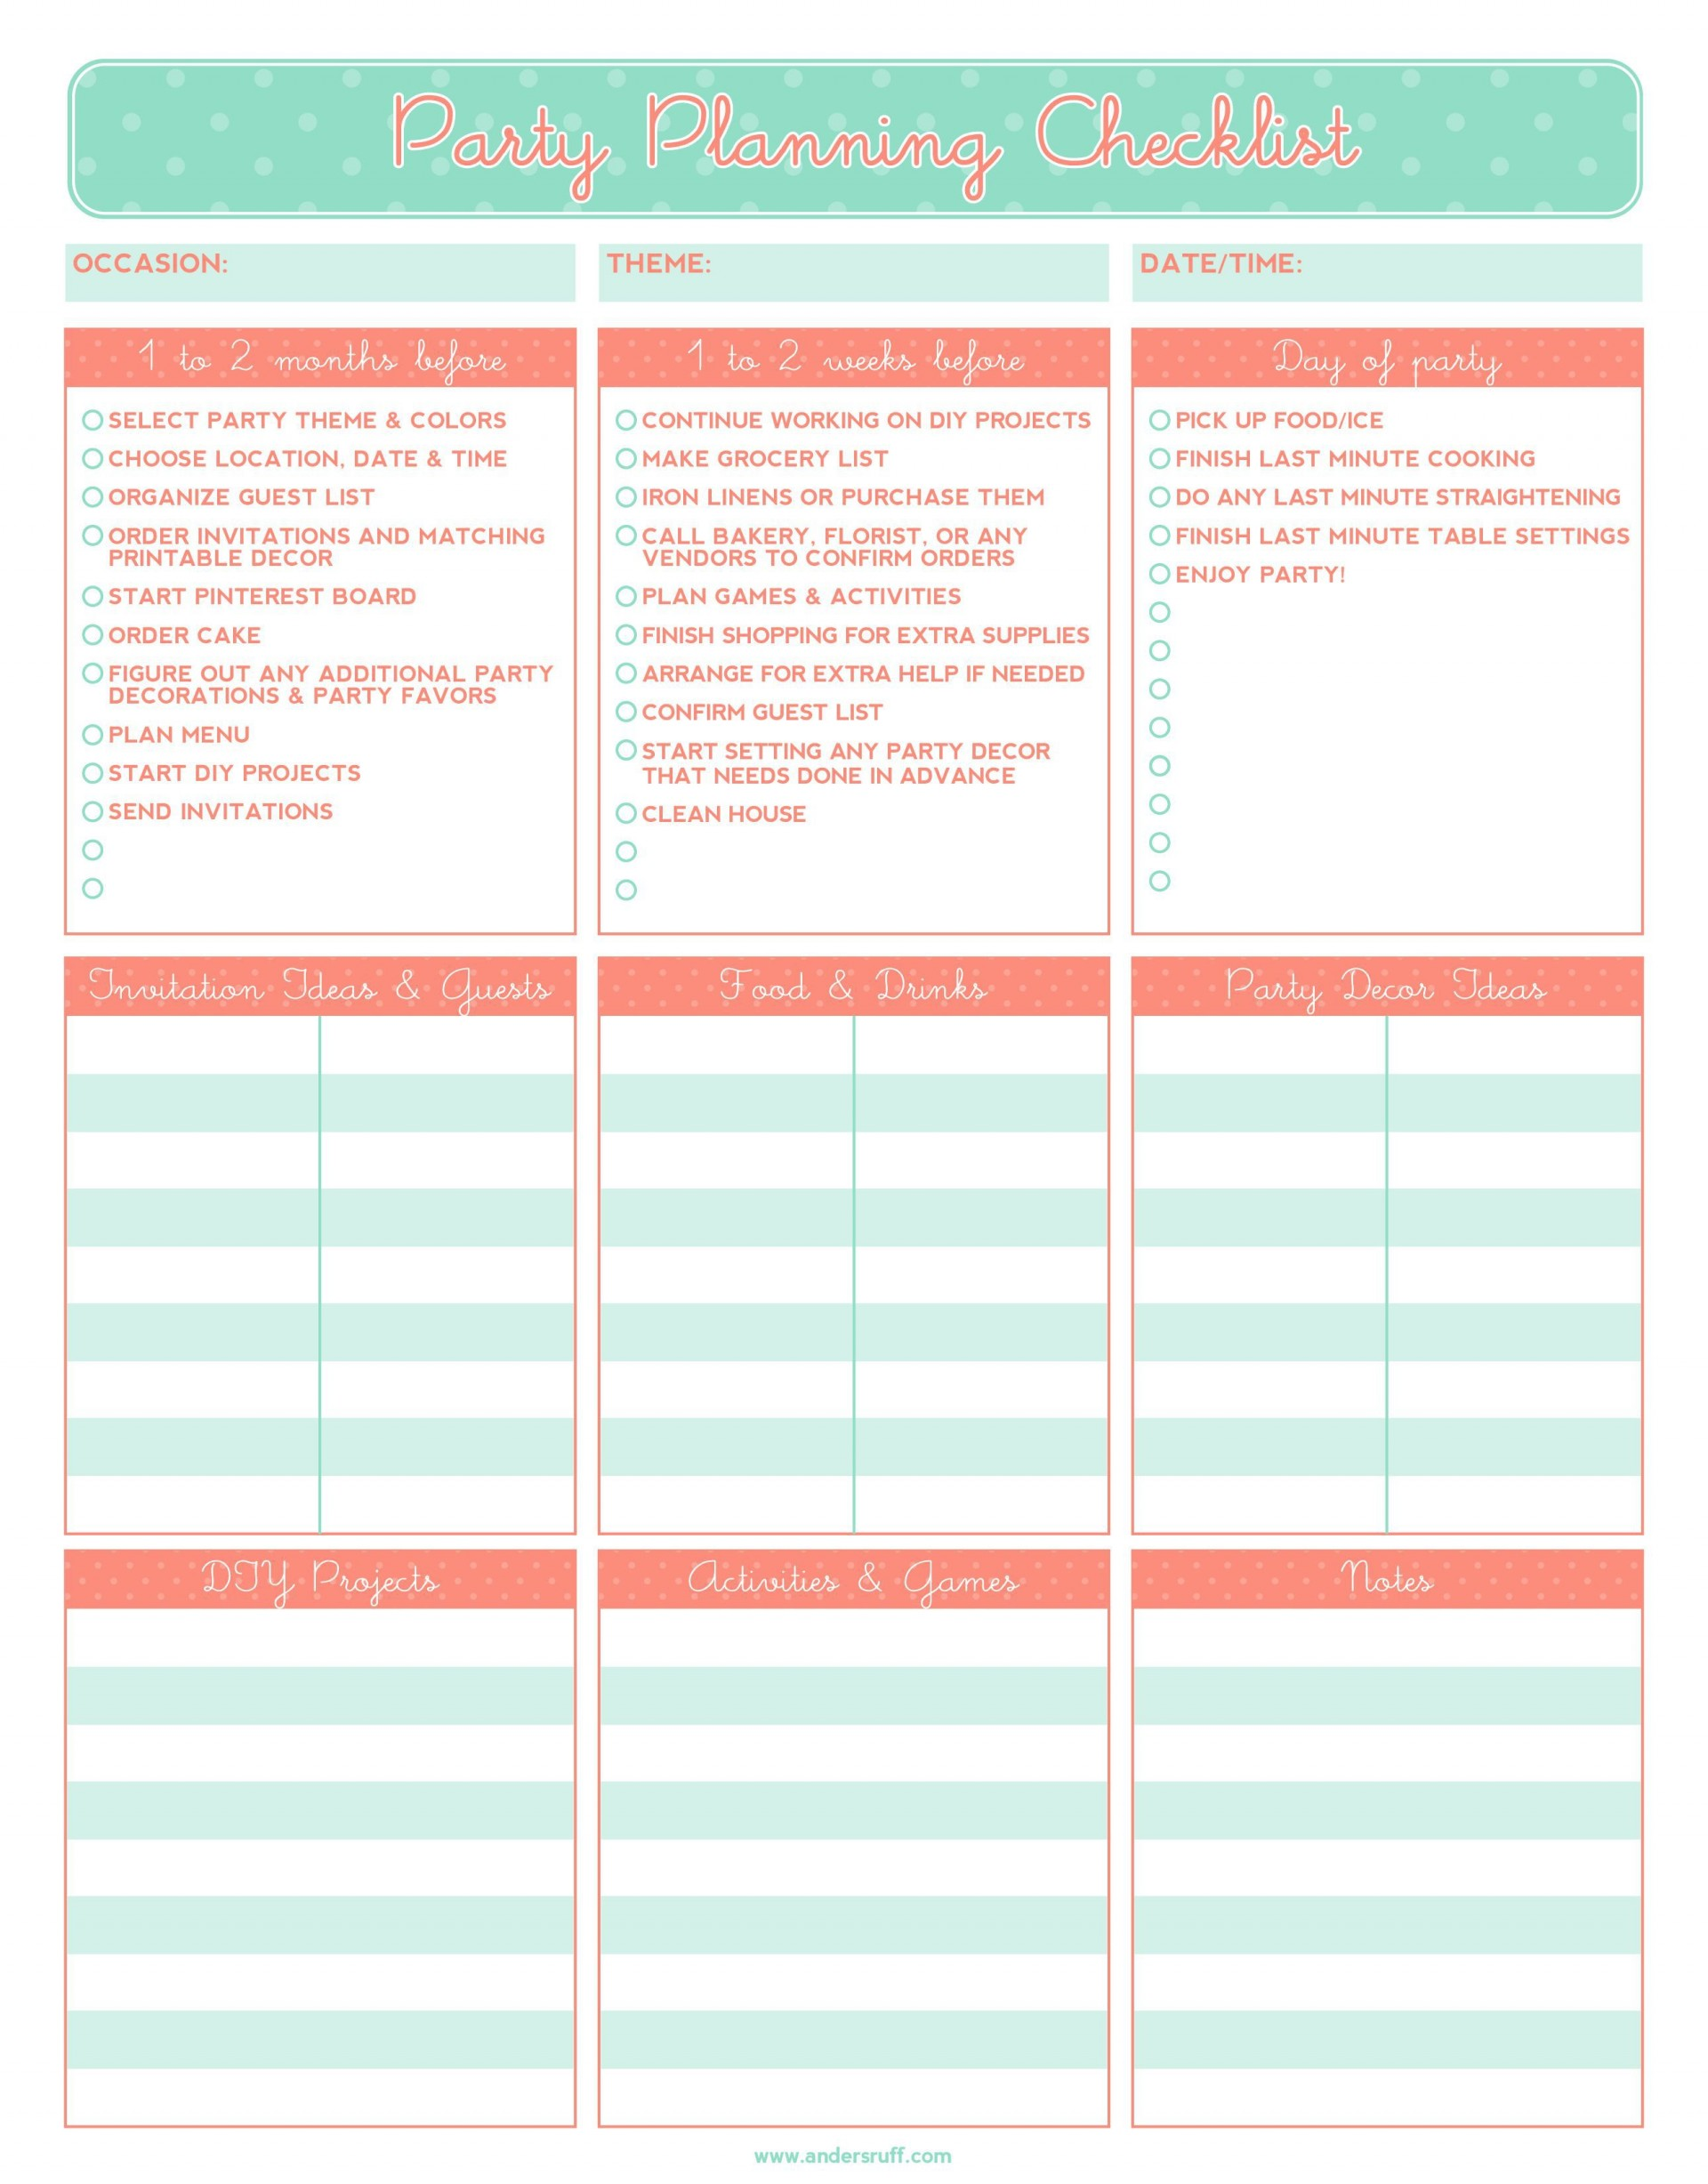 003 Exceptional Party Plan Checklist Template High Resolution  Planning Free Graduation Birthday1920